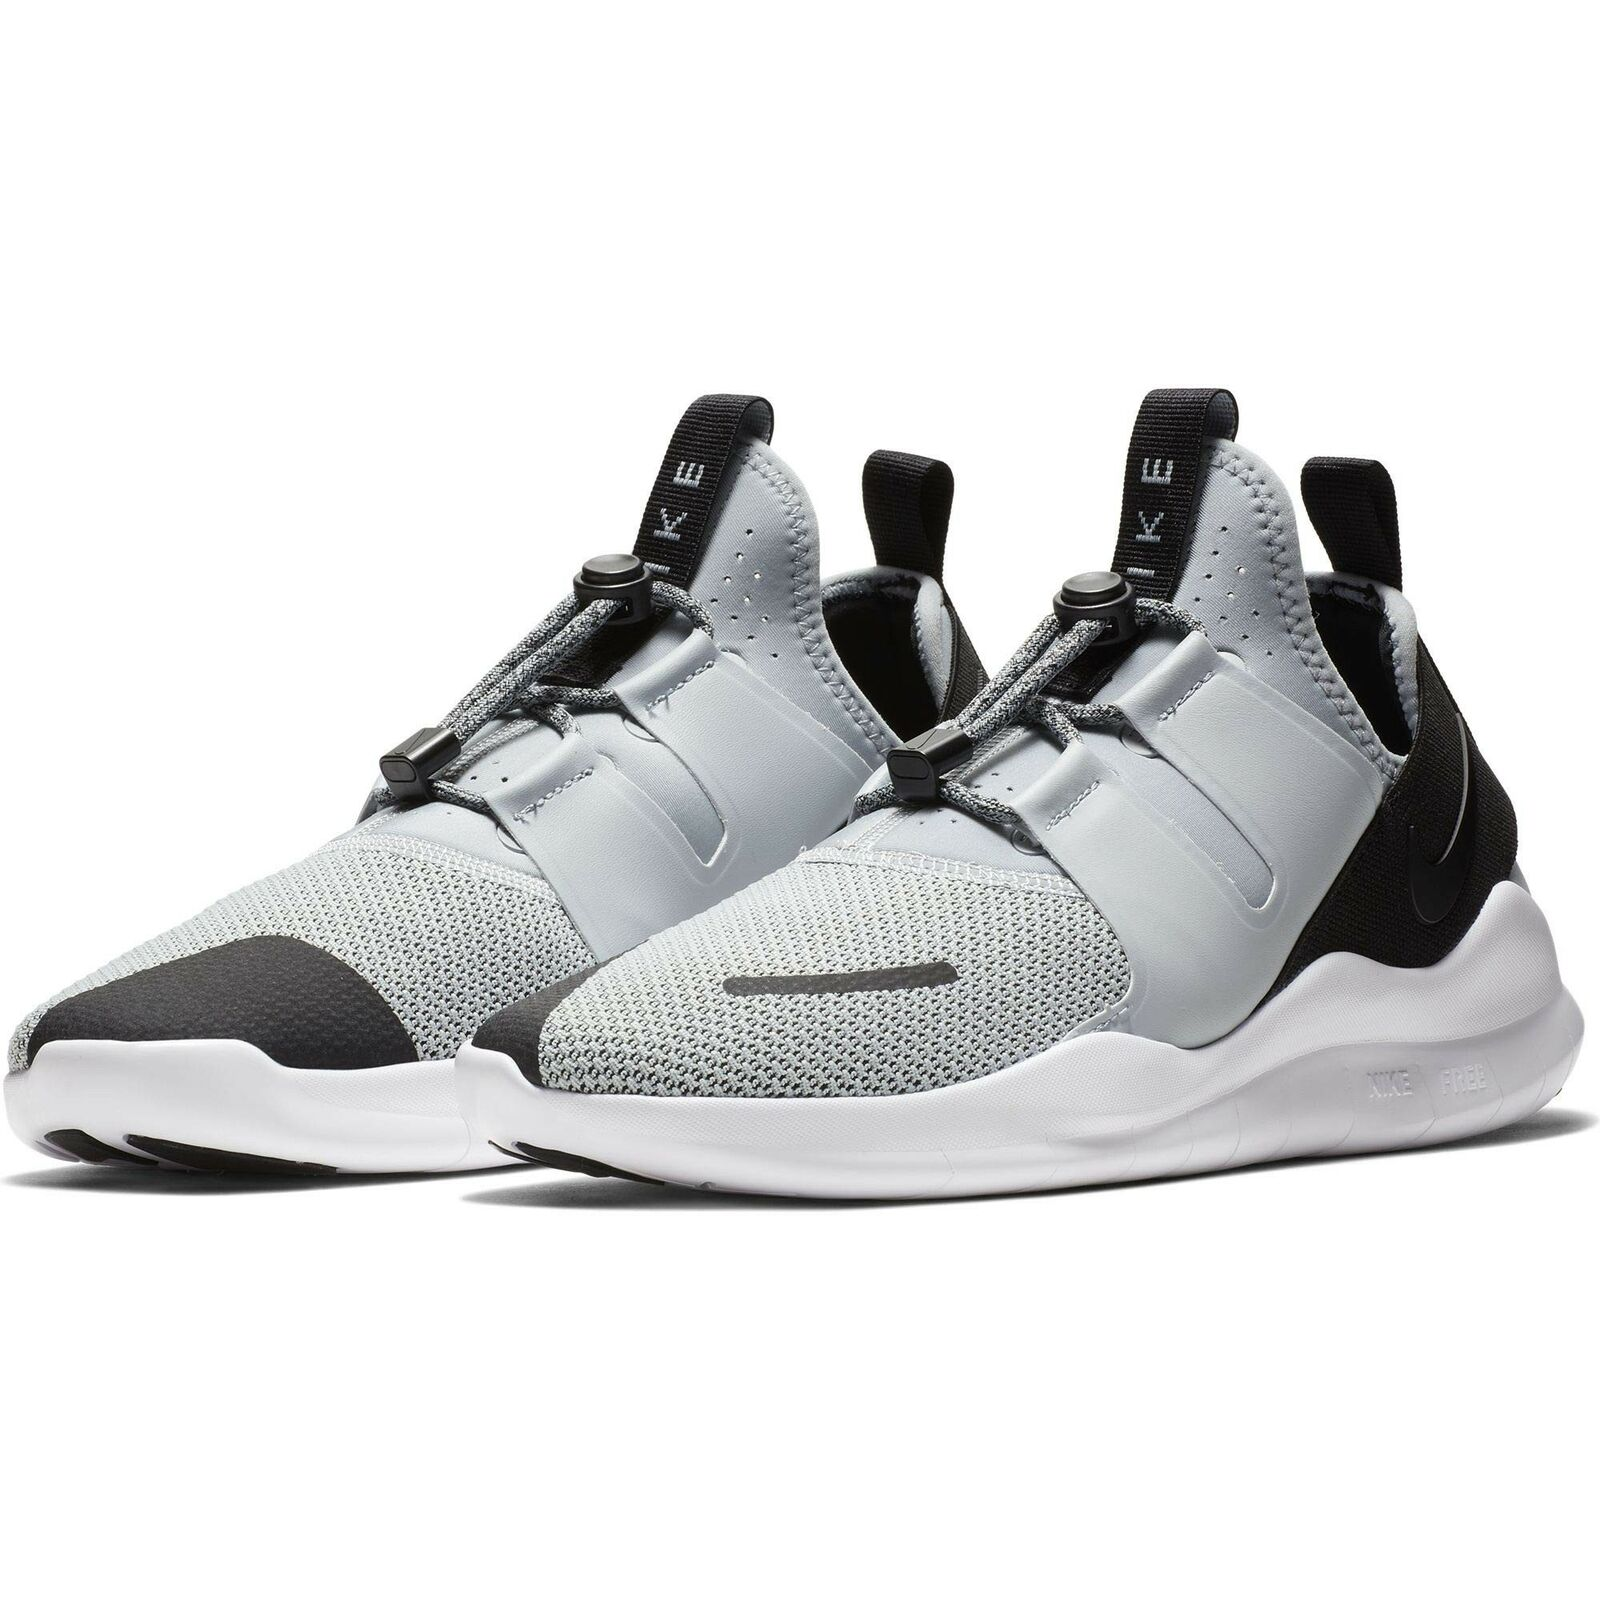 NIKE Men's Free RN Commuter 2018 Premium Running shoes